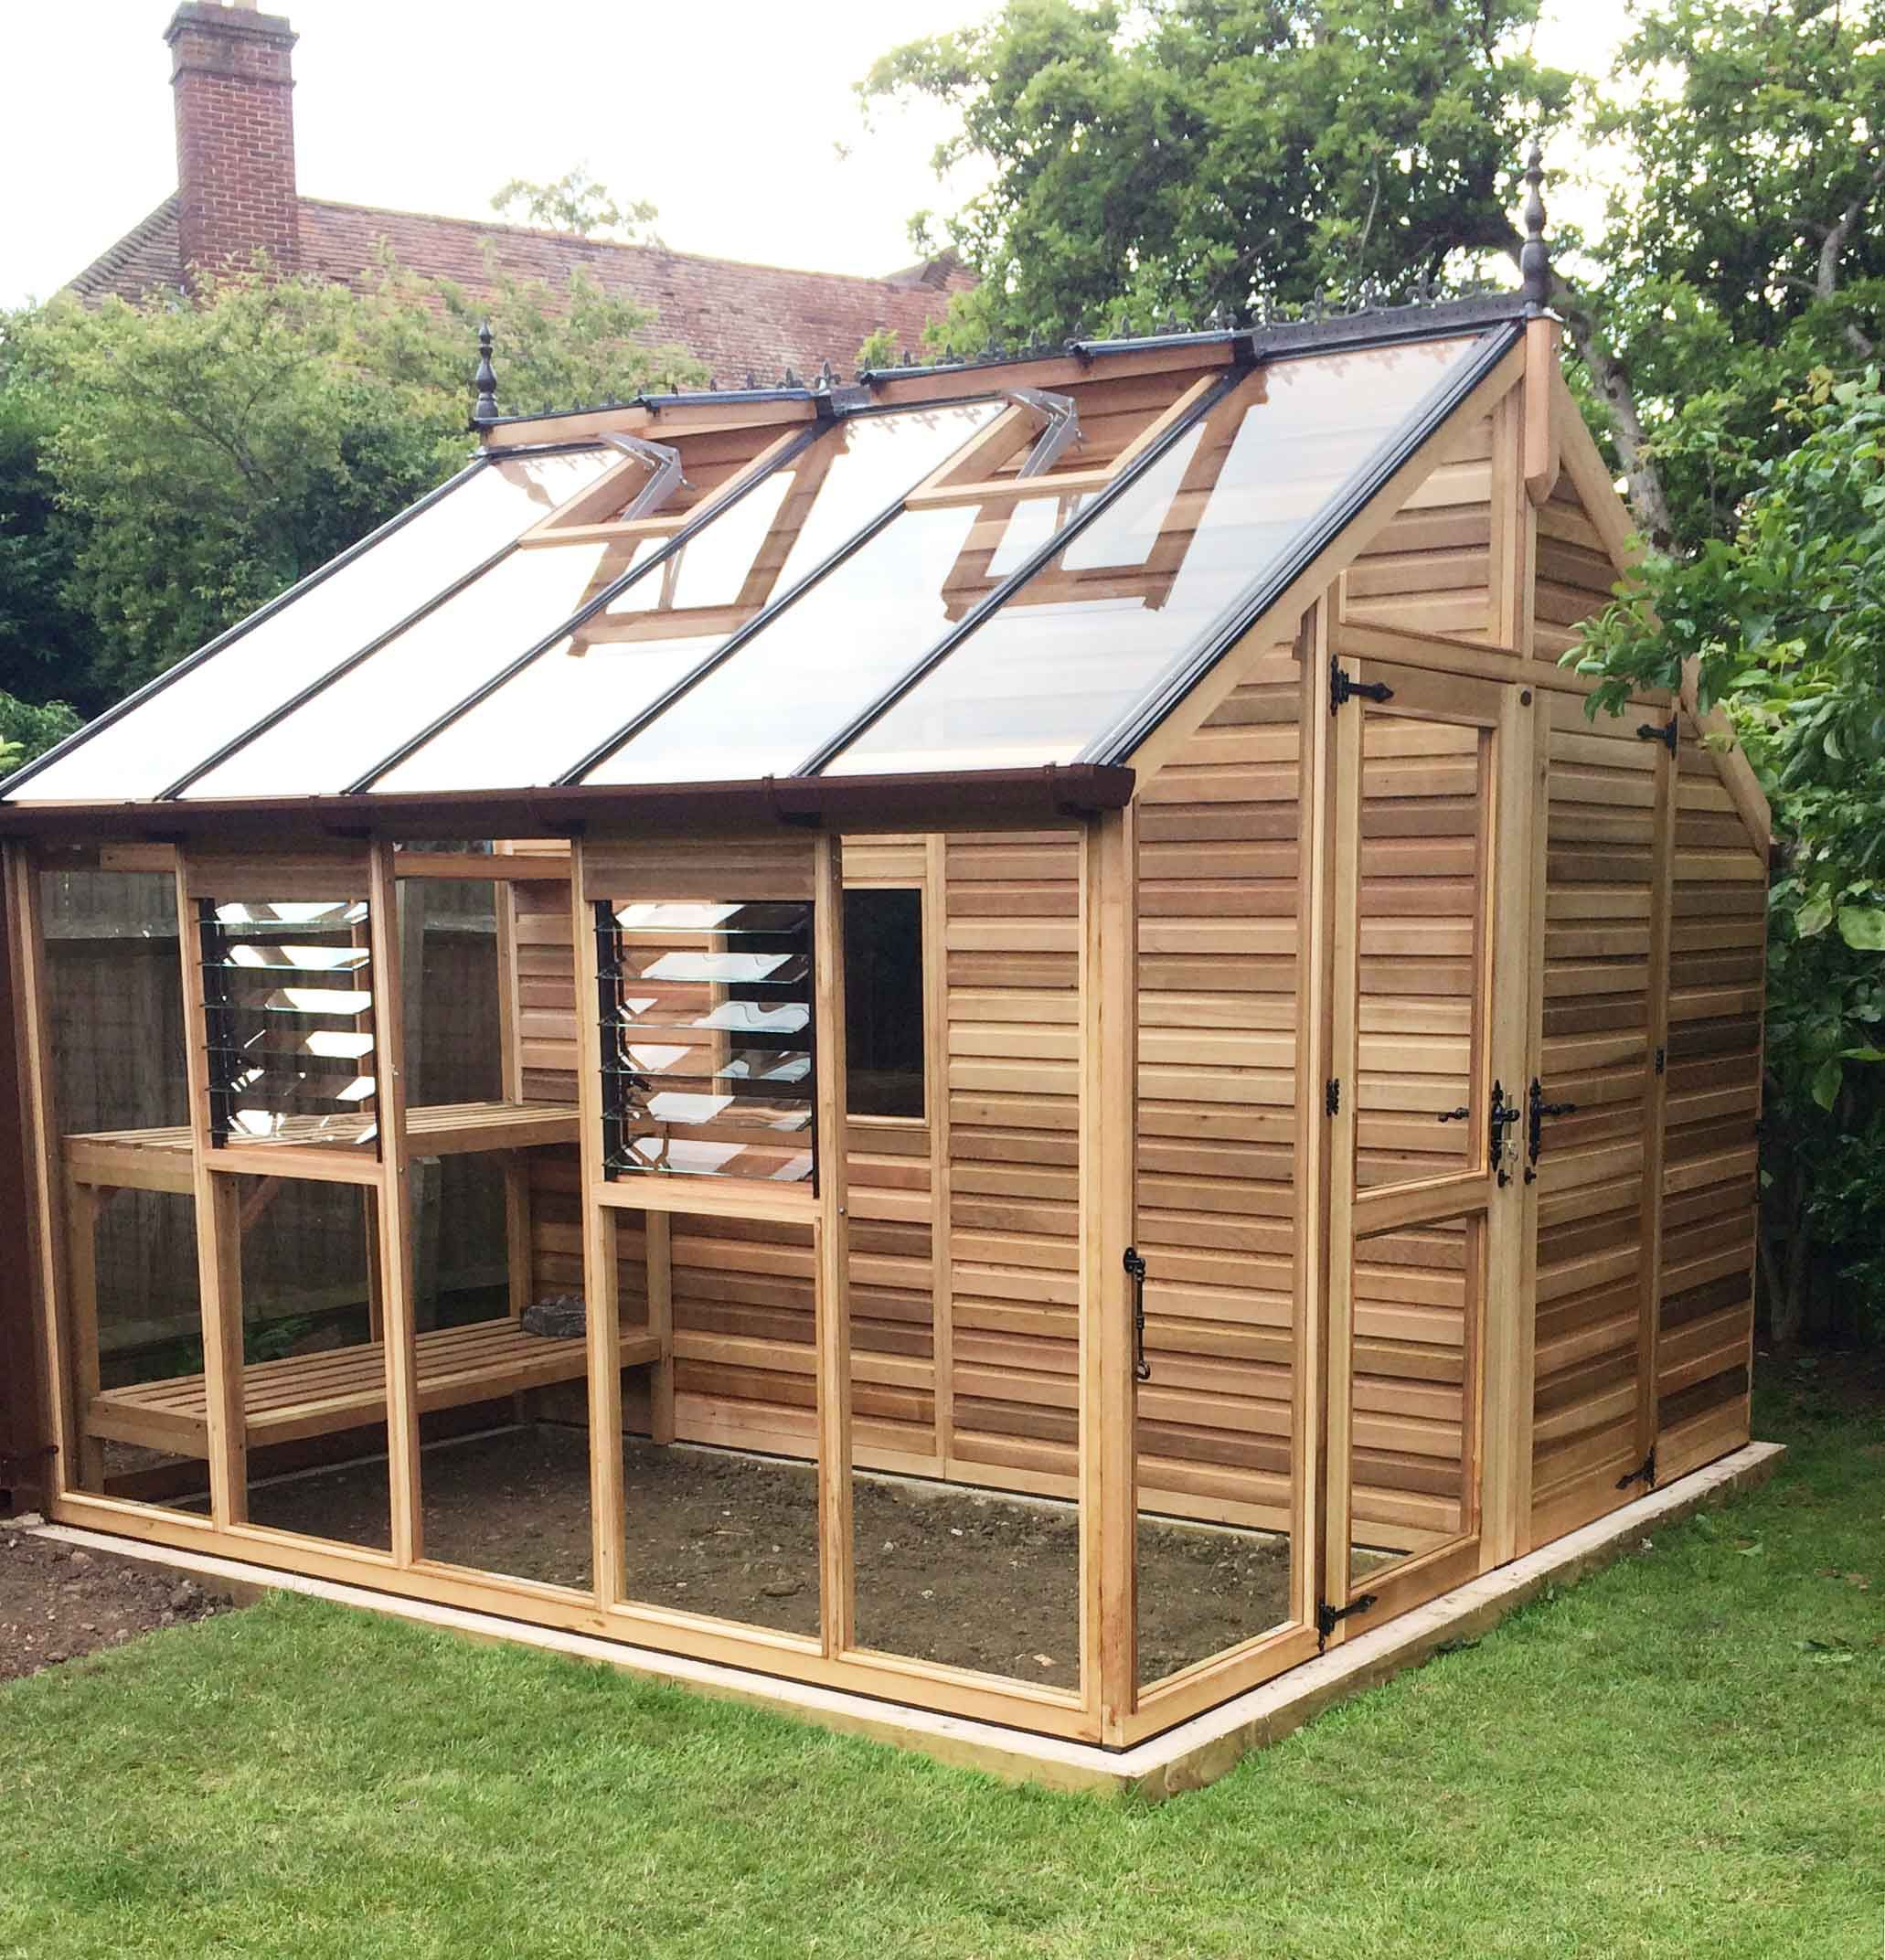 Cedar centaur shed greenhouse combo 12x12 greenhouse for Garden shed plans